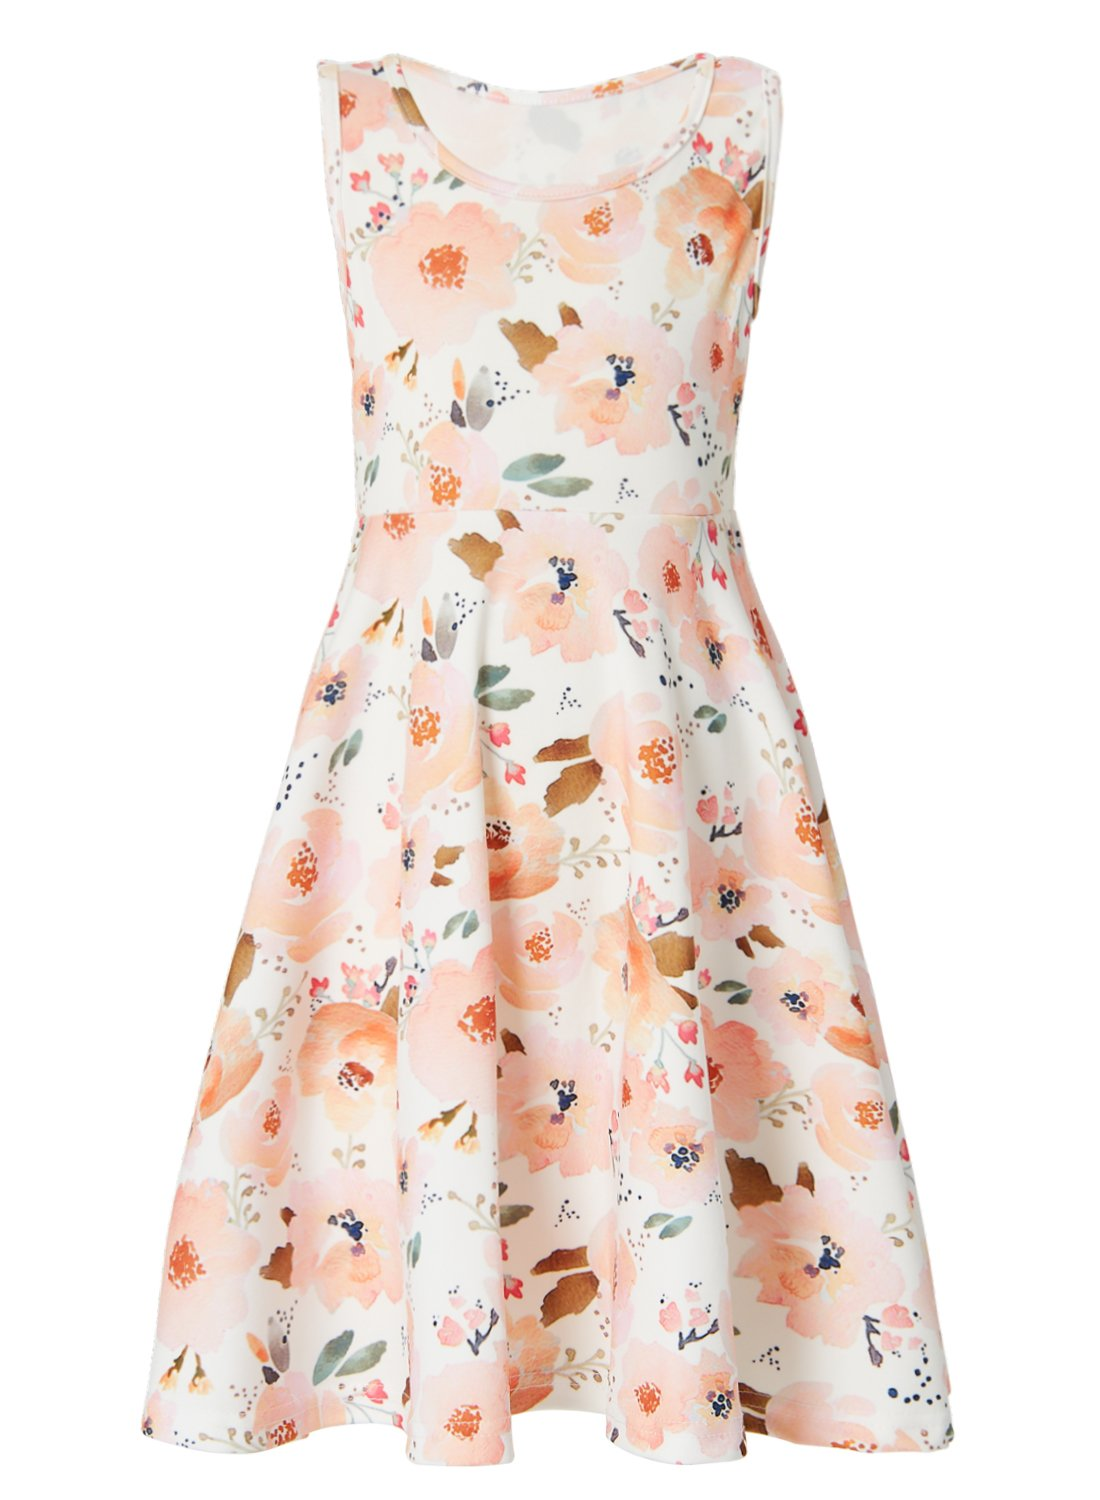 Leapparel Girls Vintage Floral Print Dress Pink Flowers Pattern Autumn Sleeveless White Pink Sundress for 8-9T Kids